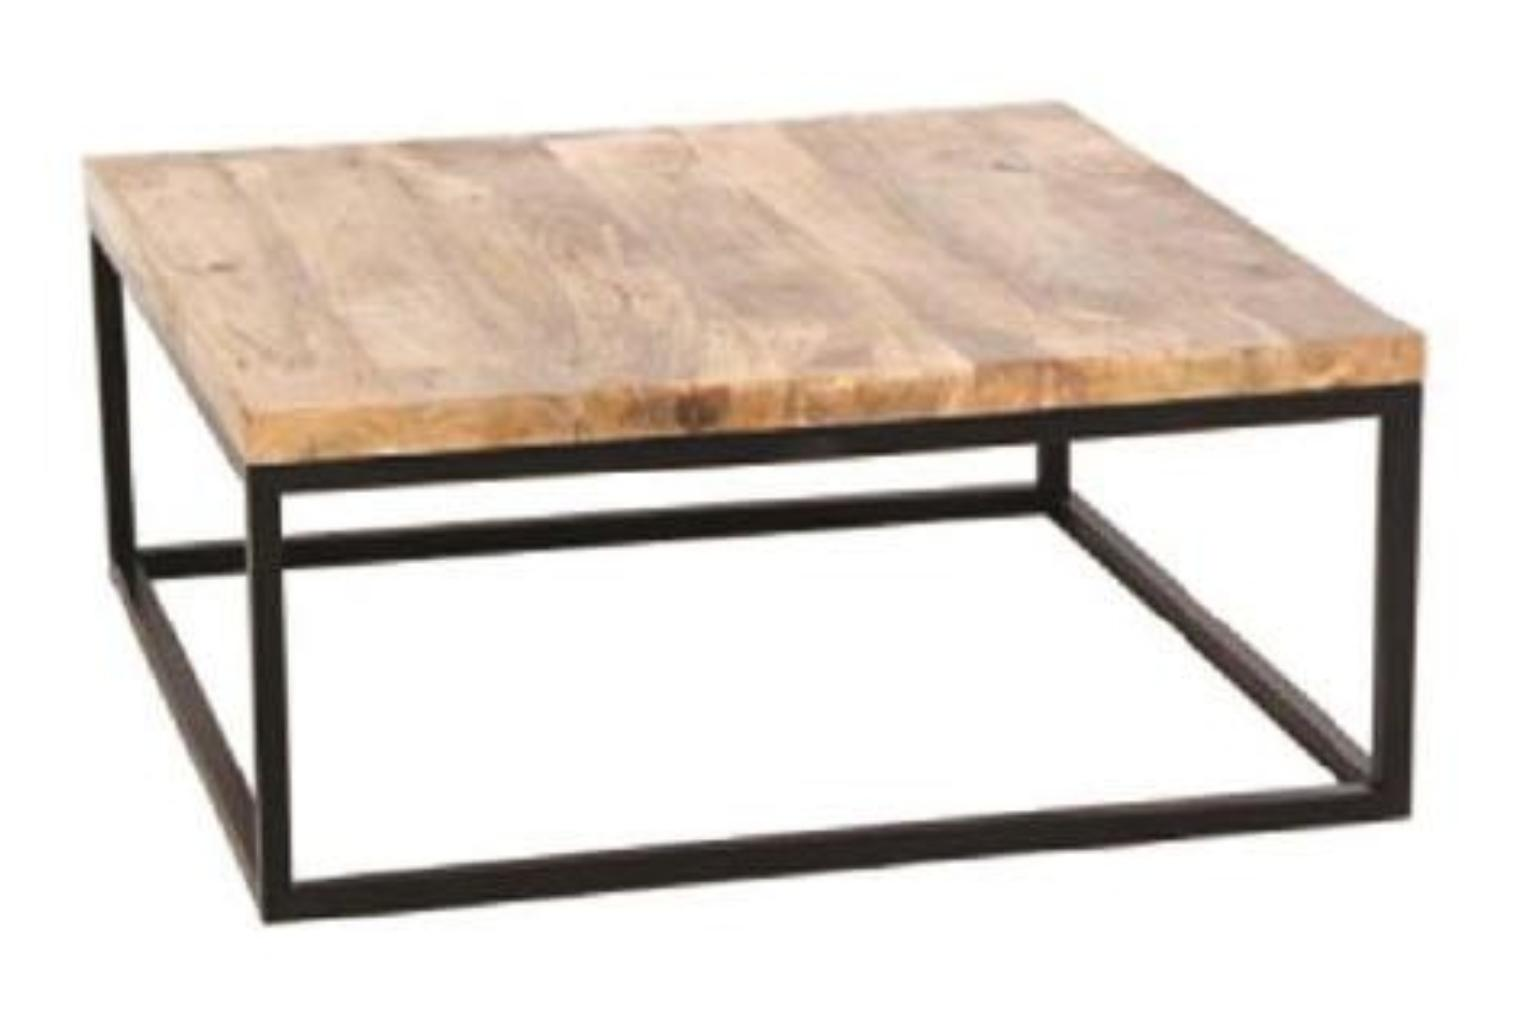 Coffee Table Round | Industrial  Sofa Table with Storage Open Shelf and Metal Legs for Living Room